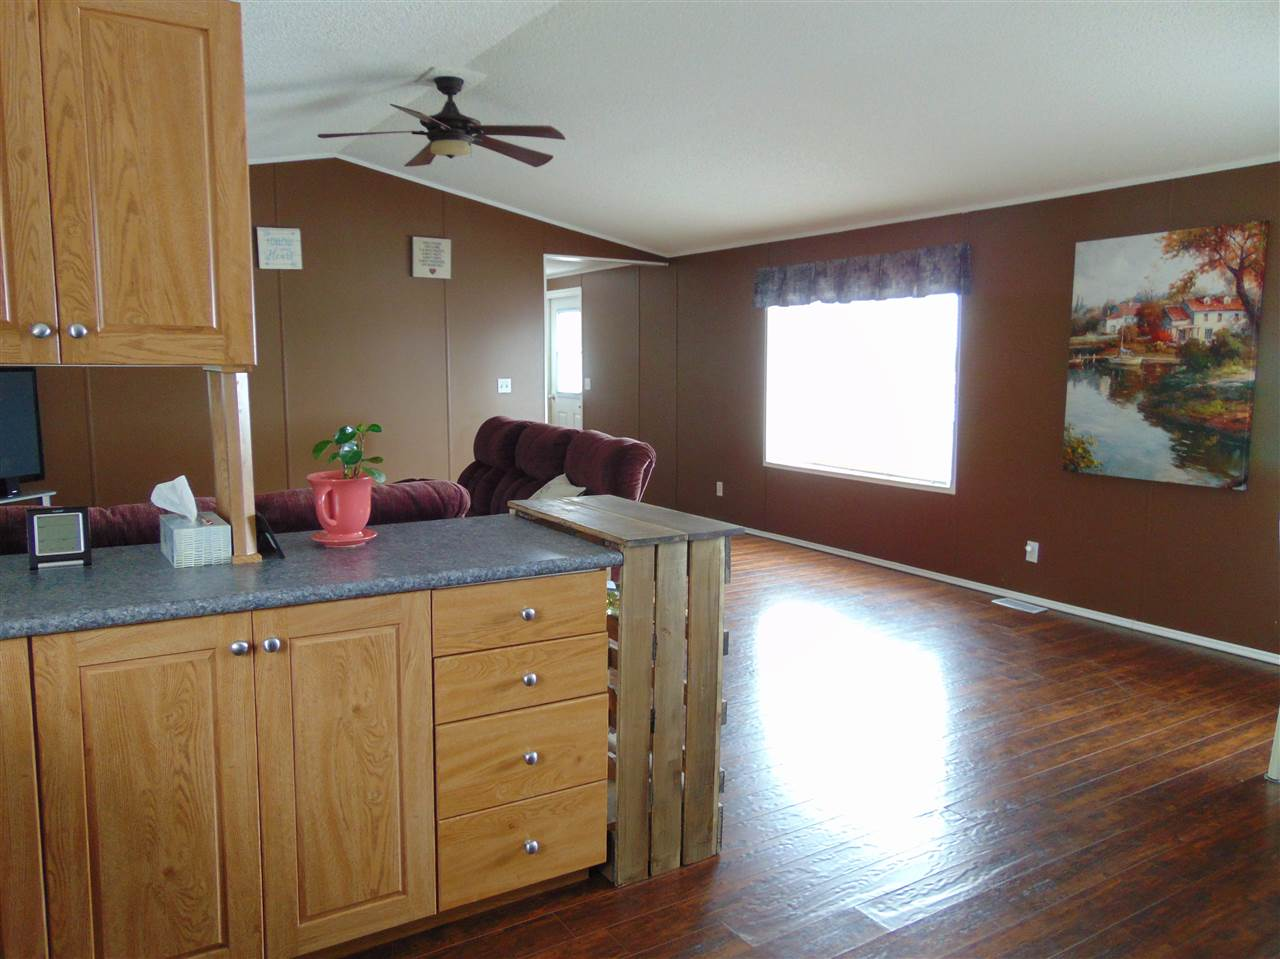 Photo 8: 60214 Range Road 251: Rural Westlock County House for sale : MLS(r) # E4059826